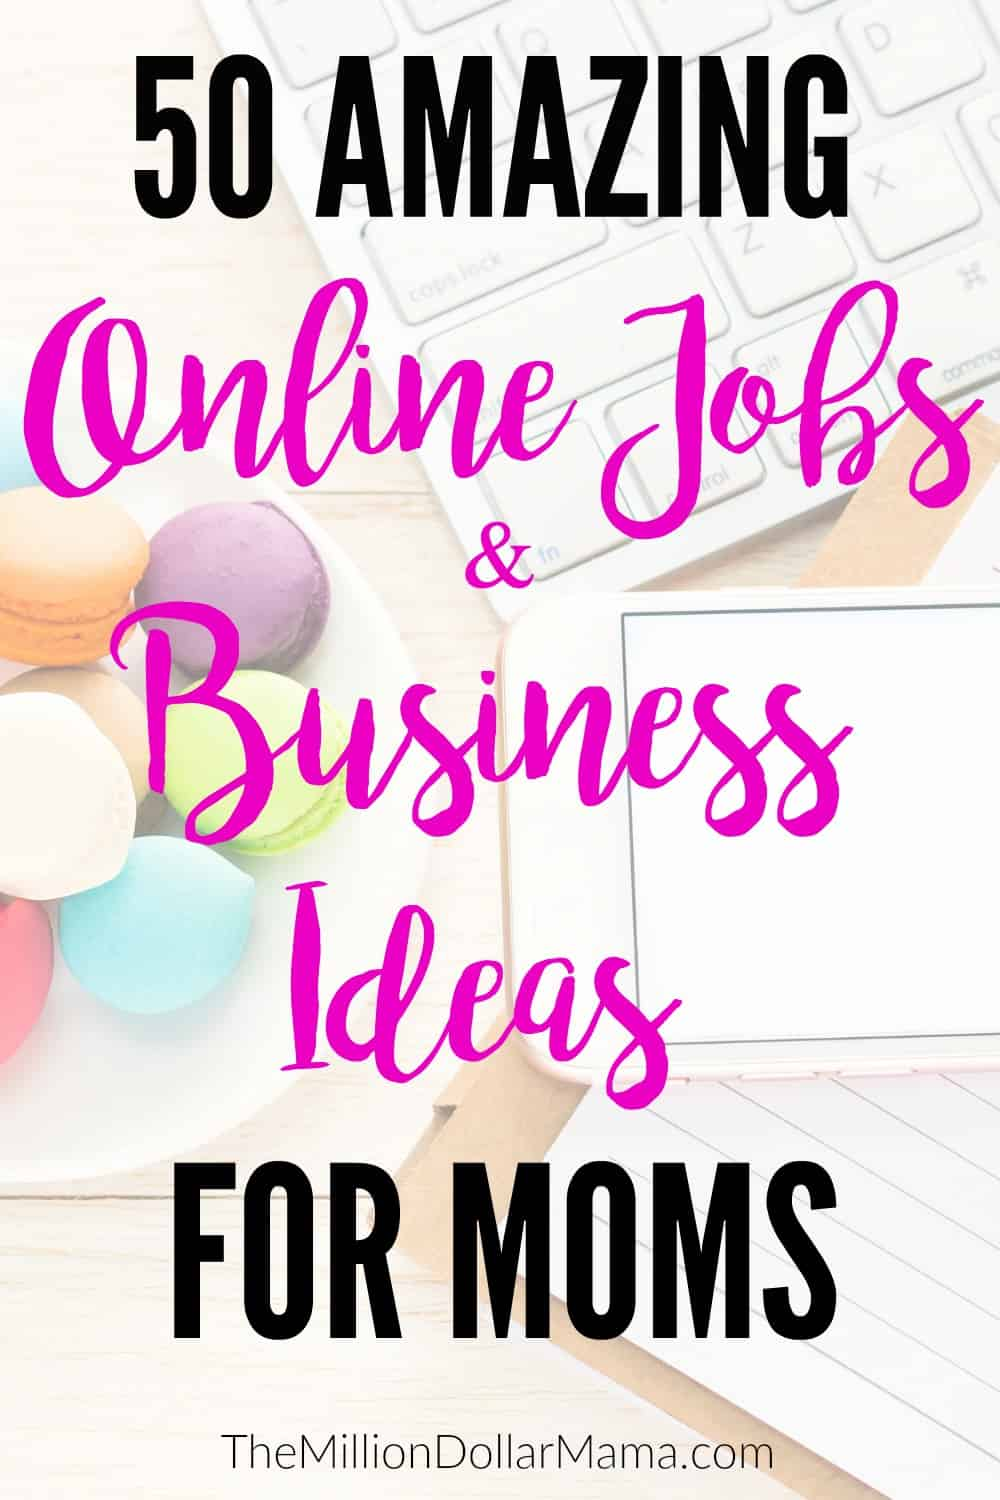 Work home business hours image Office Online Jobs And Work From Home Ideas Over 50 Great Ideas For Moms To Make The Balance Careers 50 Online Jobs And Business Ideas For Moms